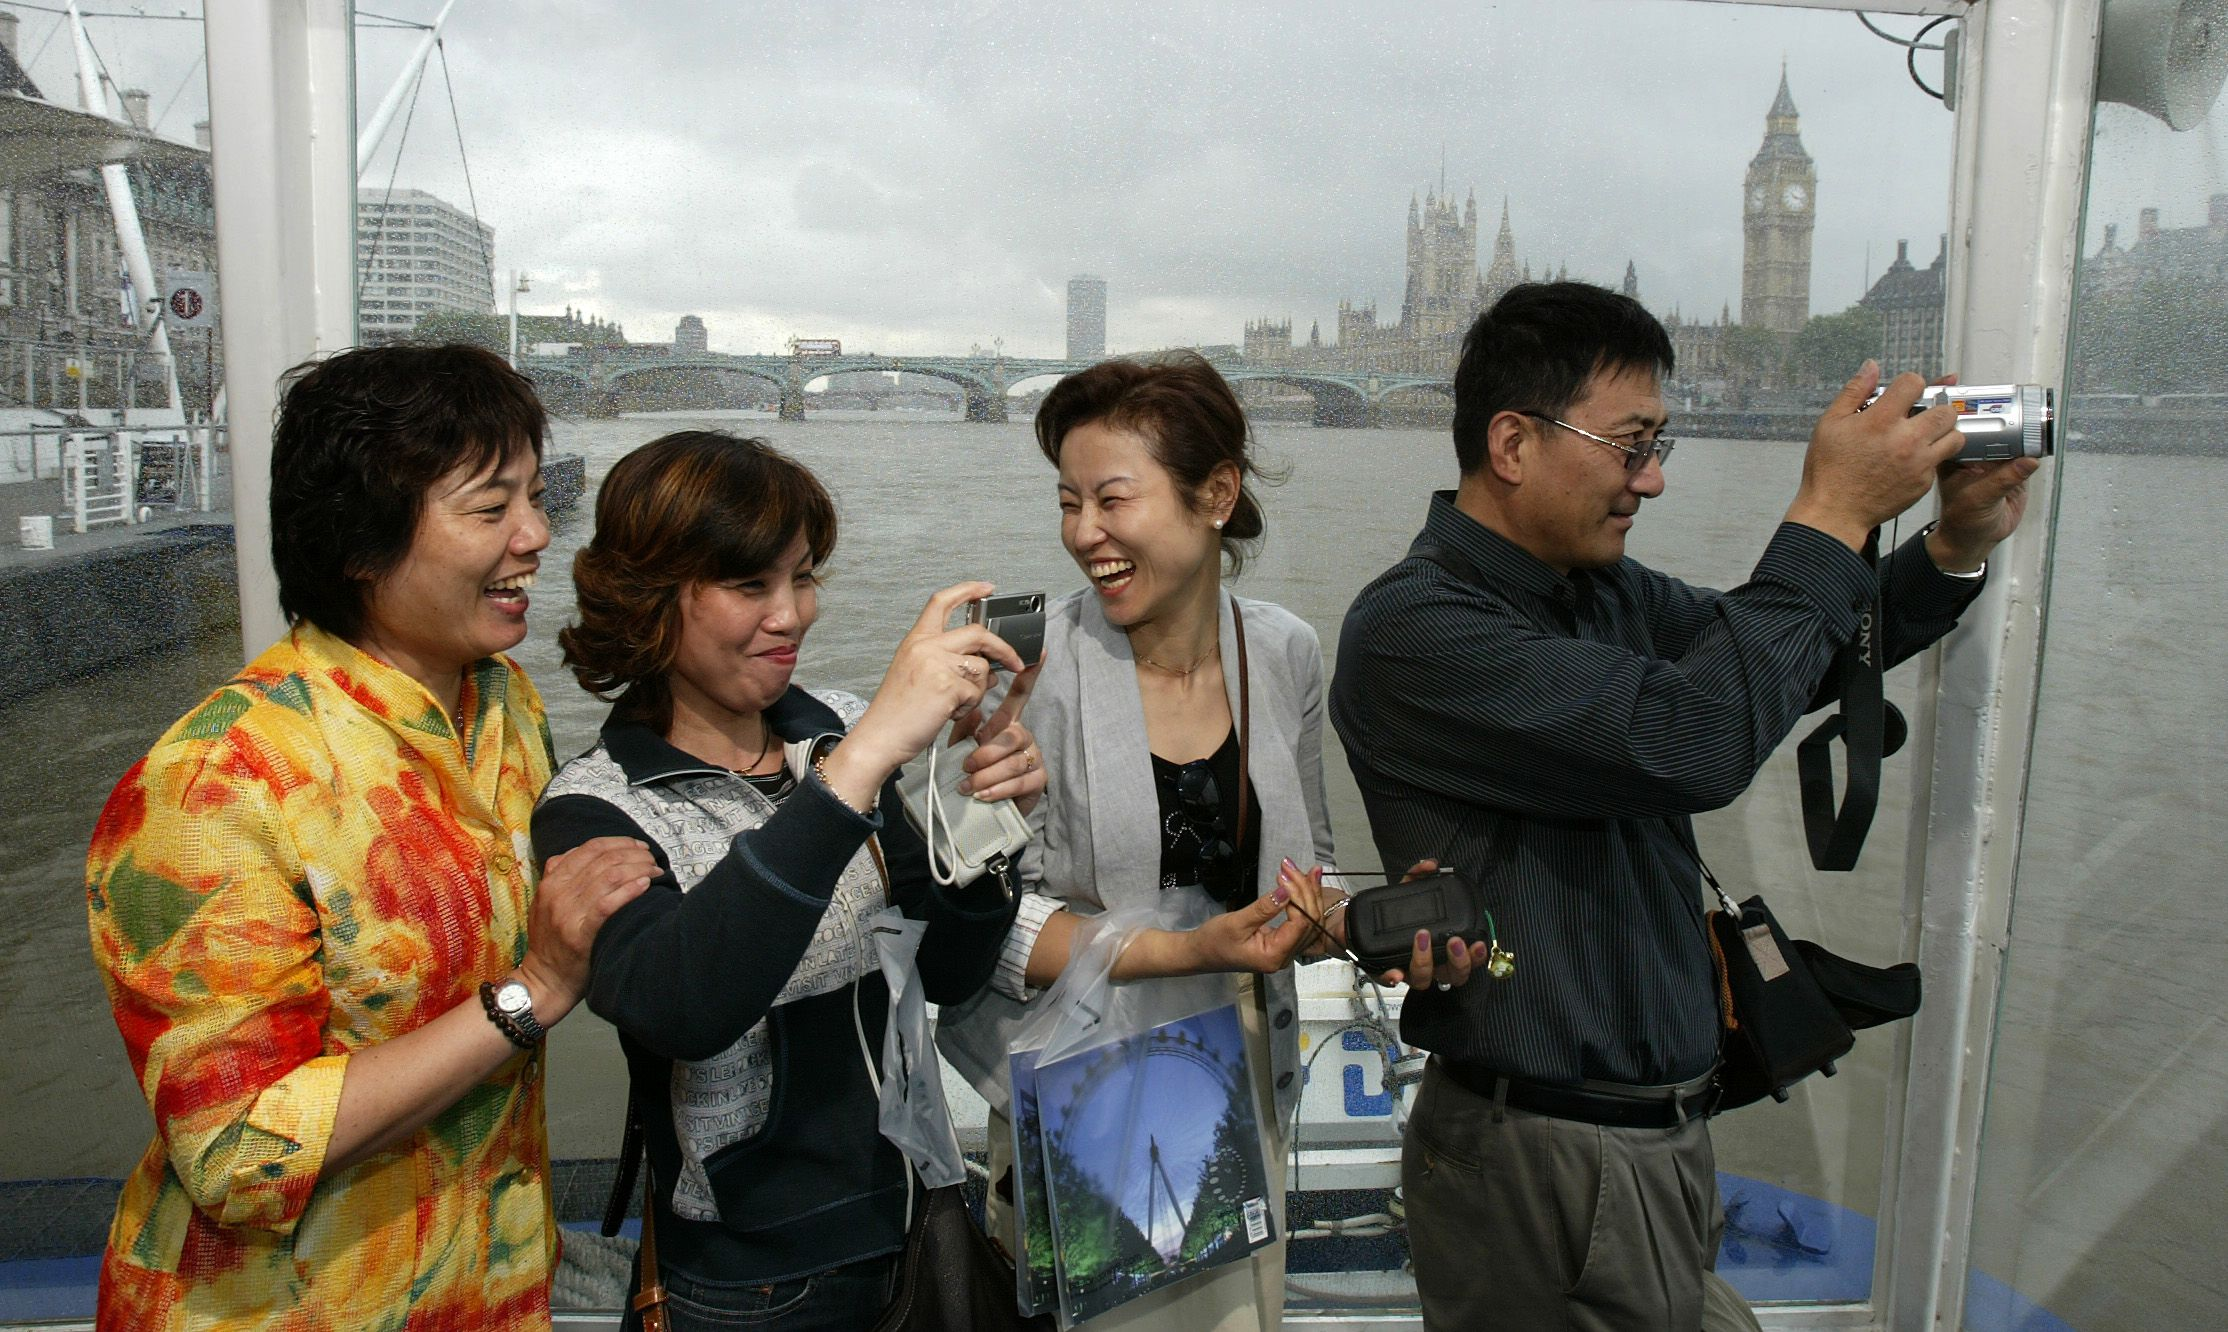 Mainland Chinese tourists take pictures during a cruise on the River Thames, central London, July 25, 2005.